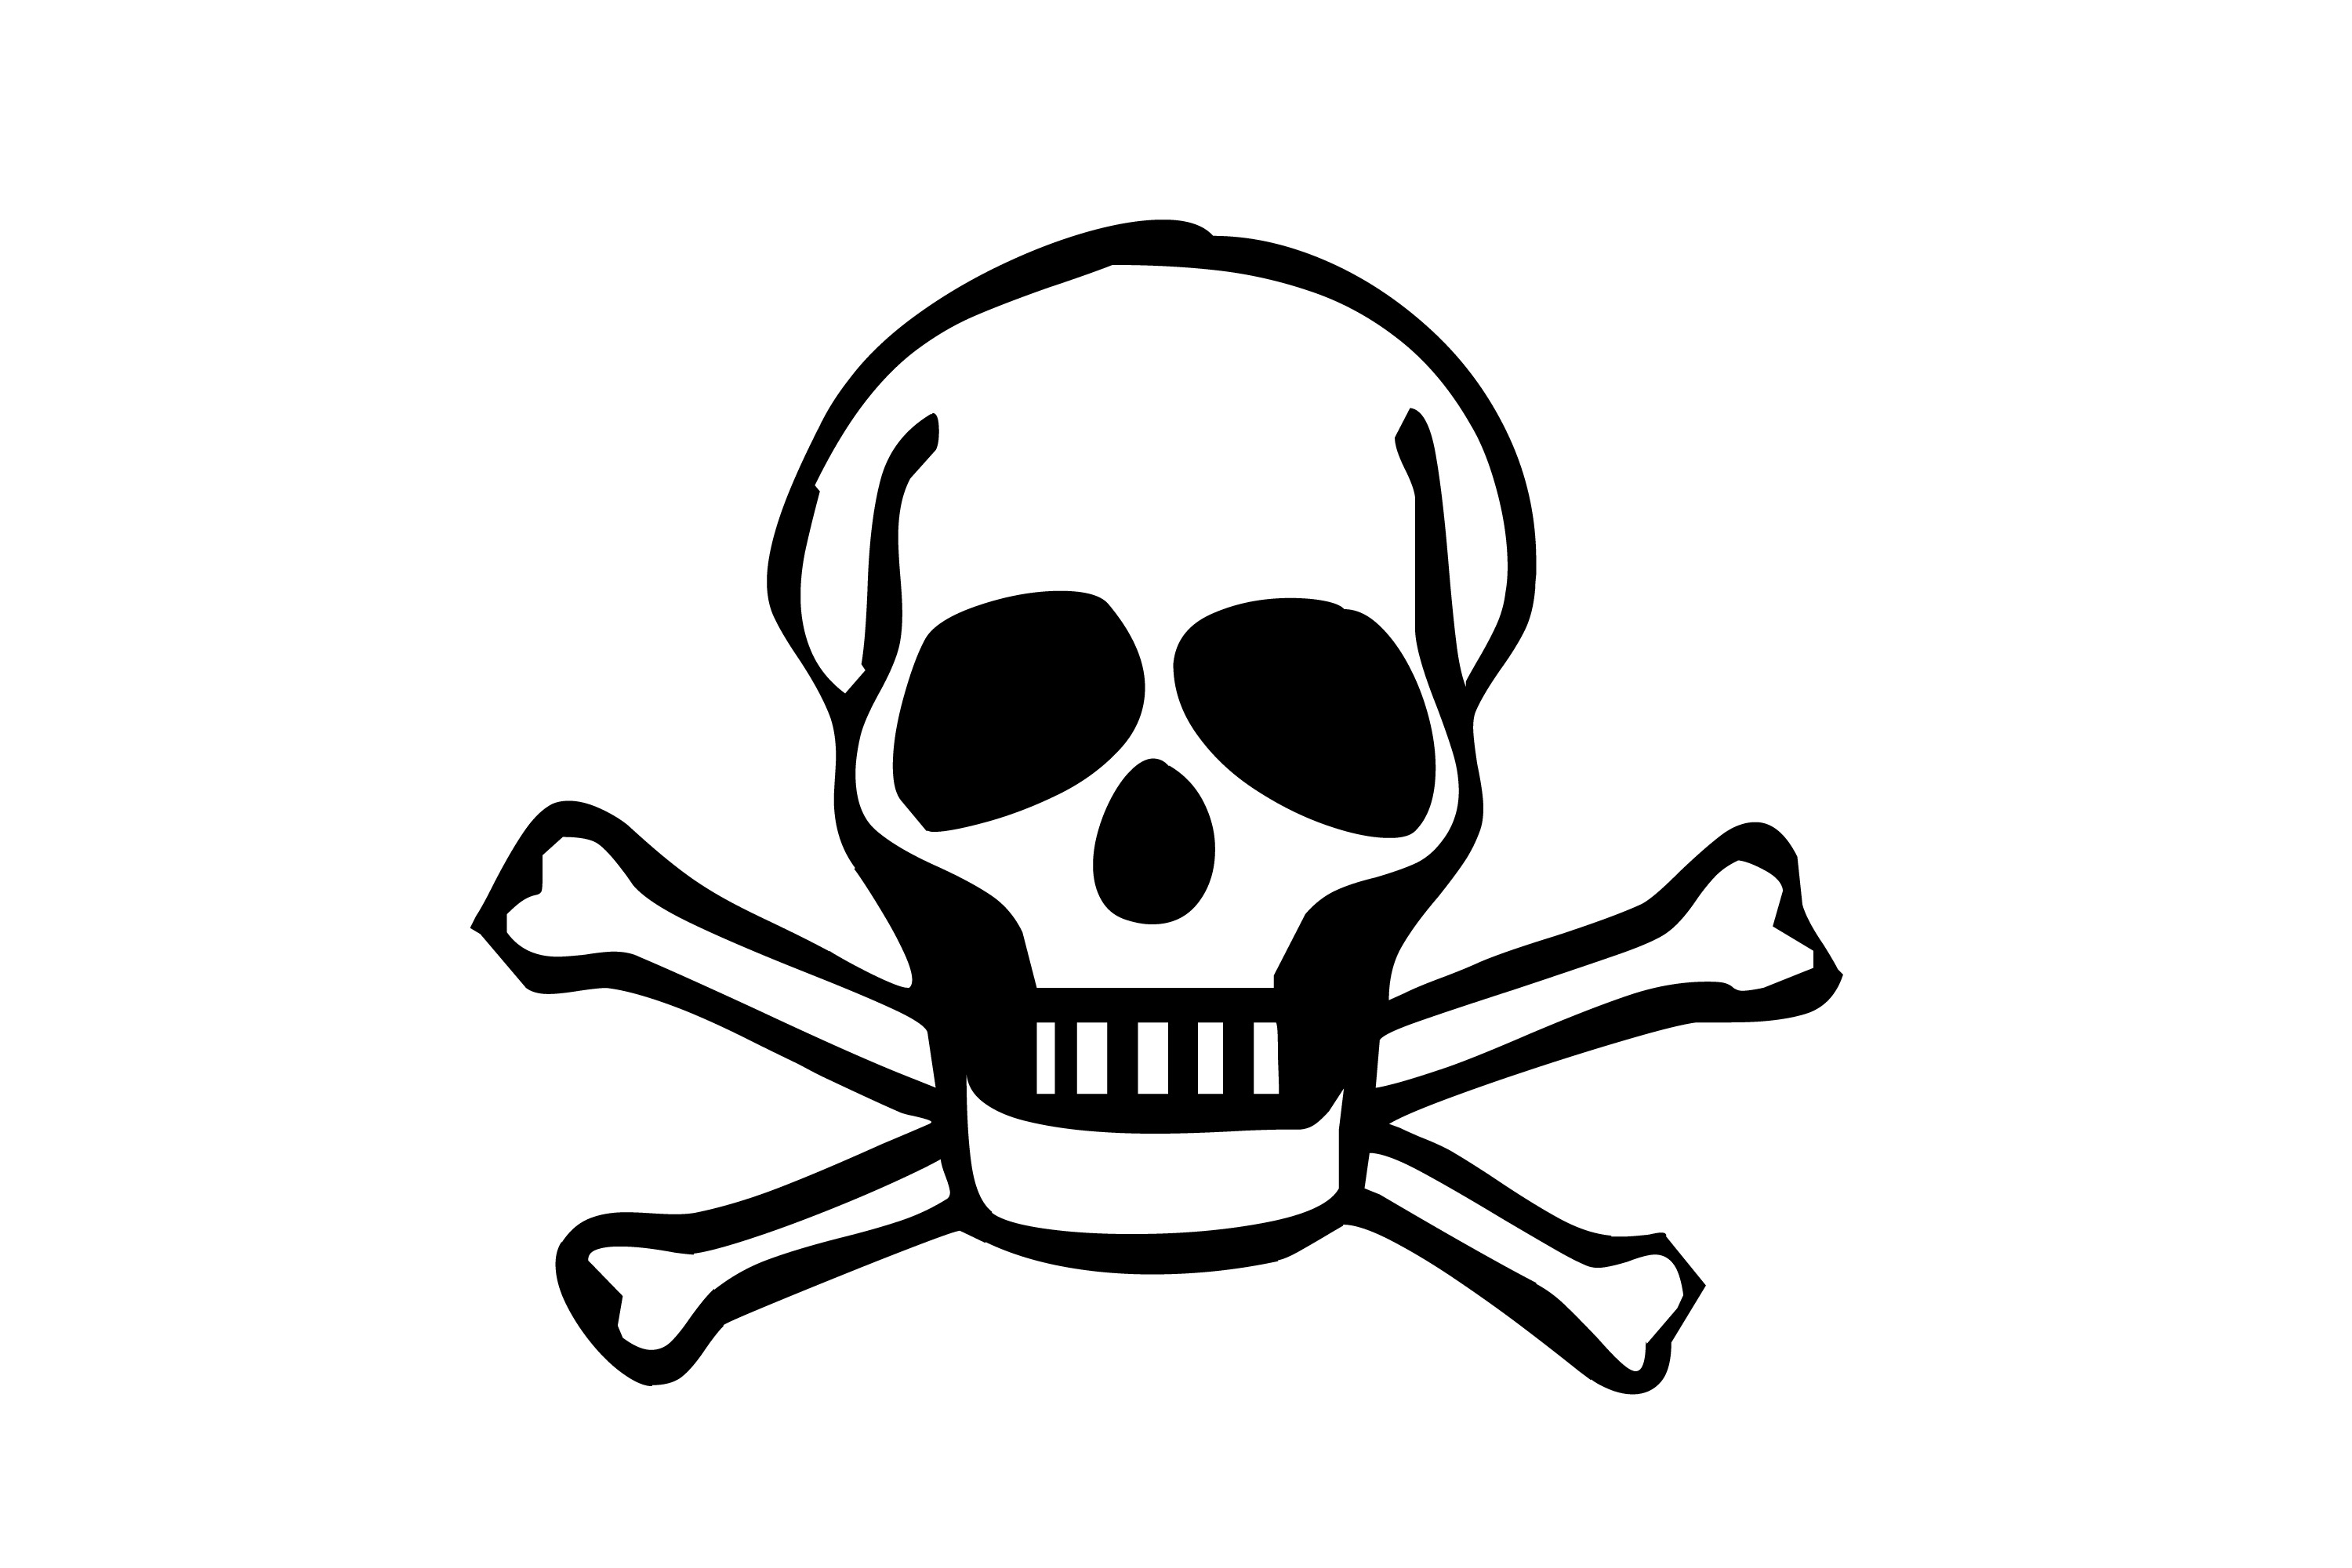 Poison clipart skeleton. Danger pencil and in